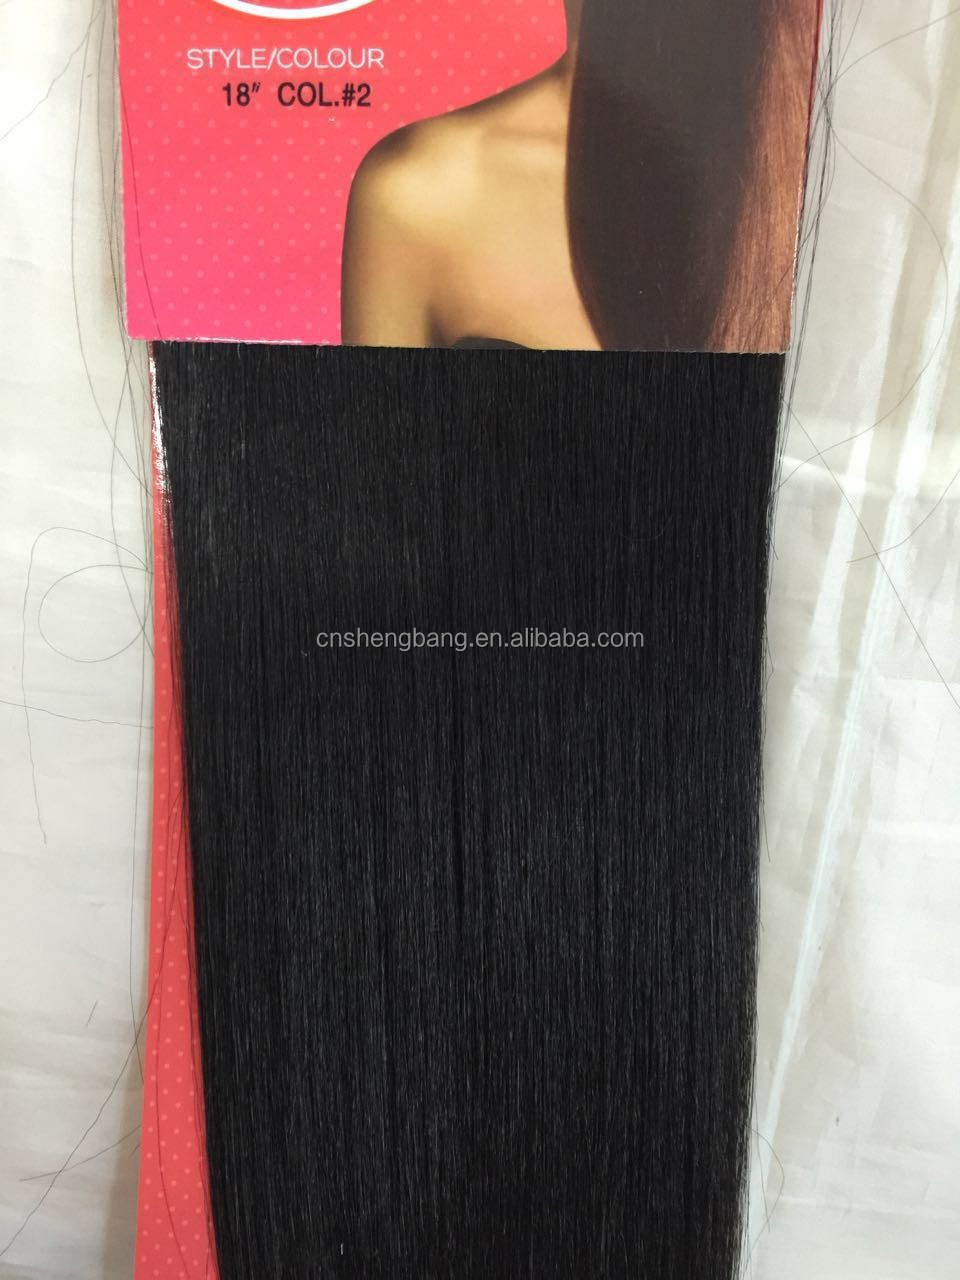 The Look Gold 22 Synthetic Hair Weft Length 14inch 22inchcolor 1